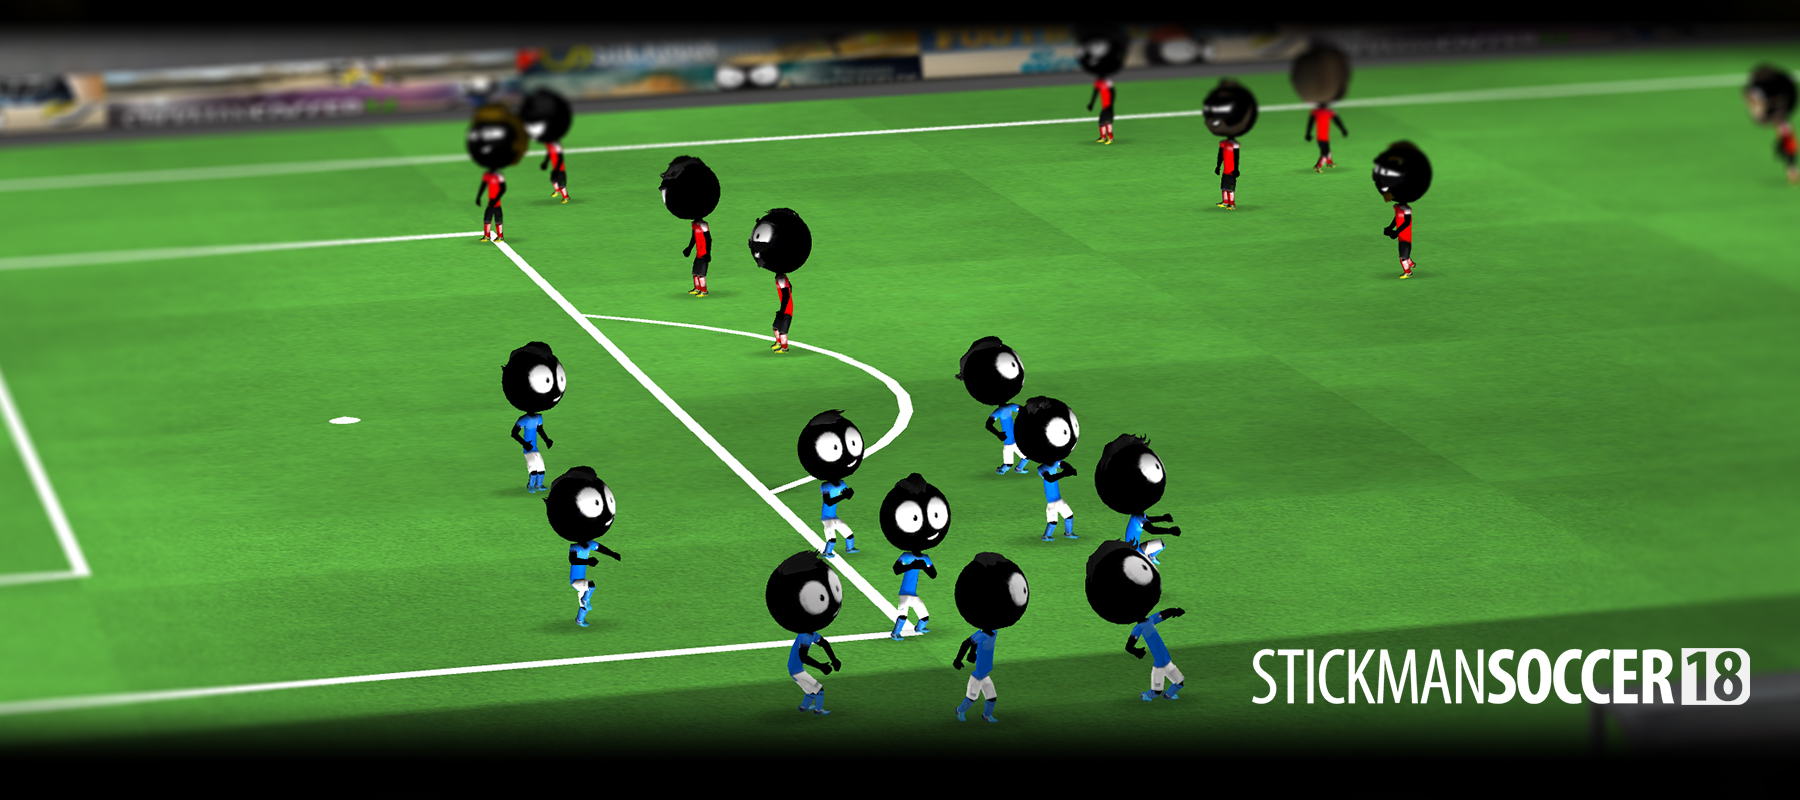 BannerSoccer18_02